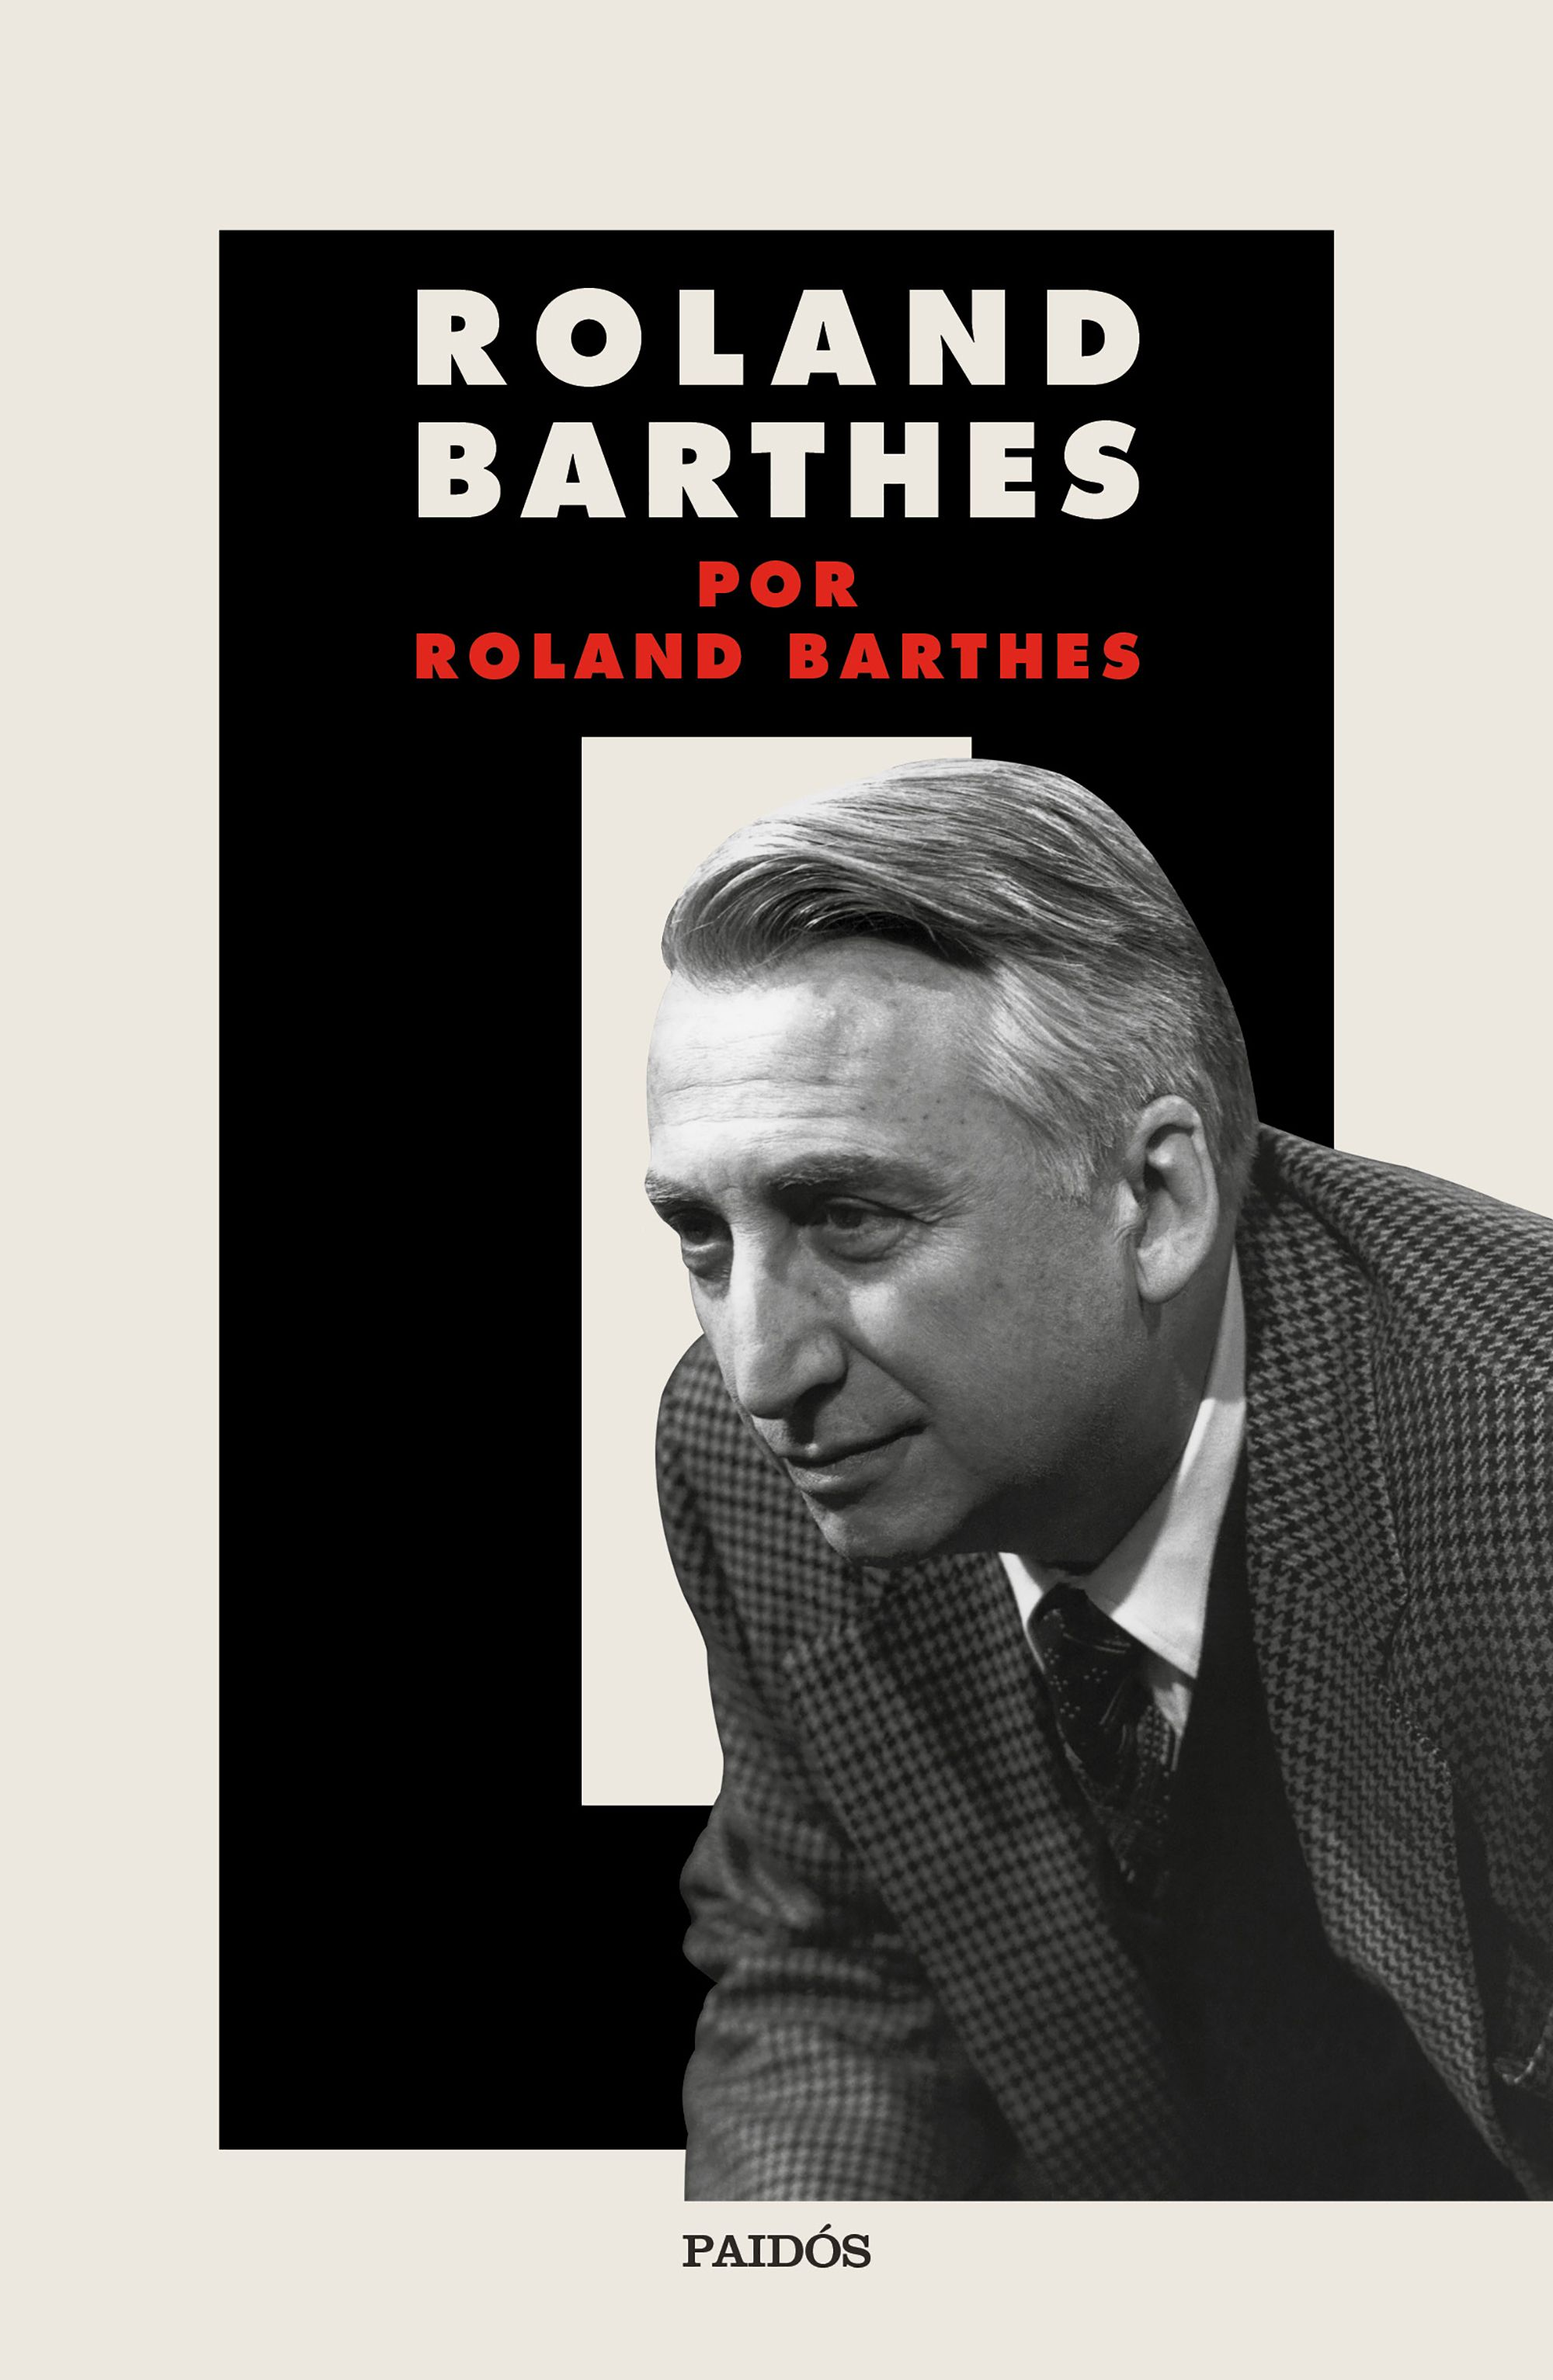 Roland Barthes por Roland Barthes. 9788449337826